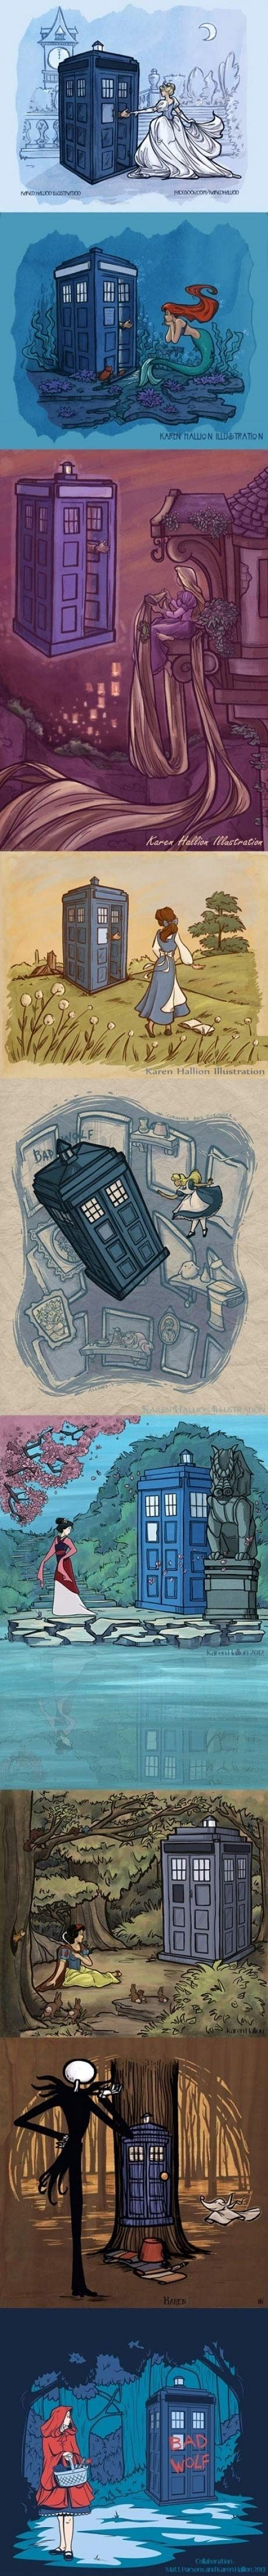 Doctor Who gets around...using Disney Princesses as his new companions | Very nice mash here.